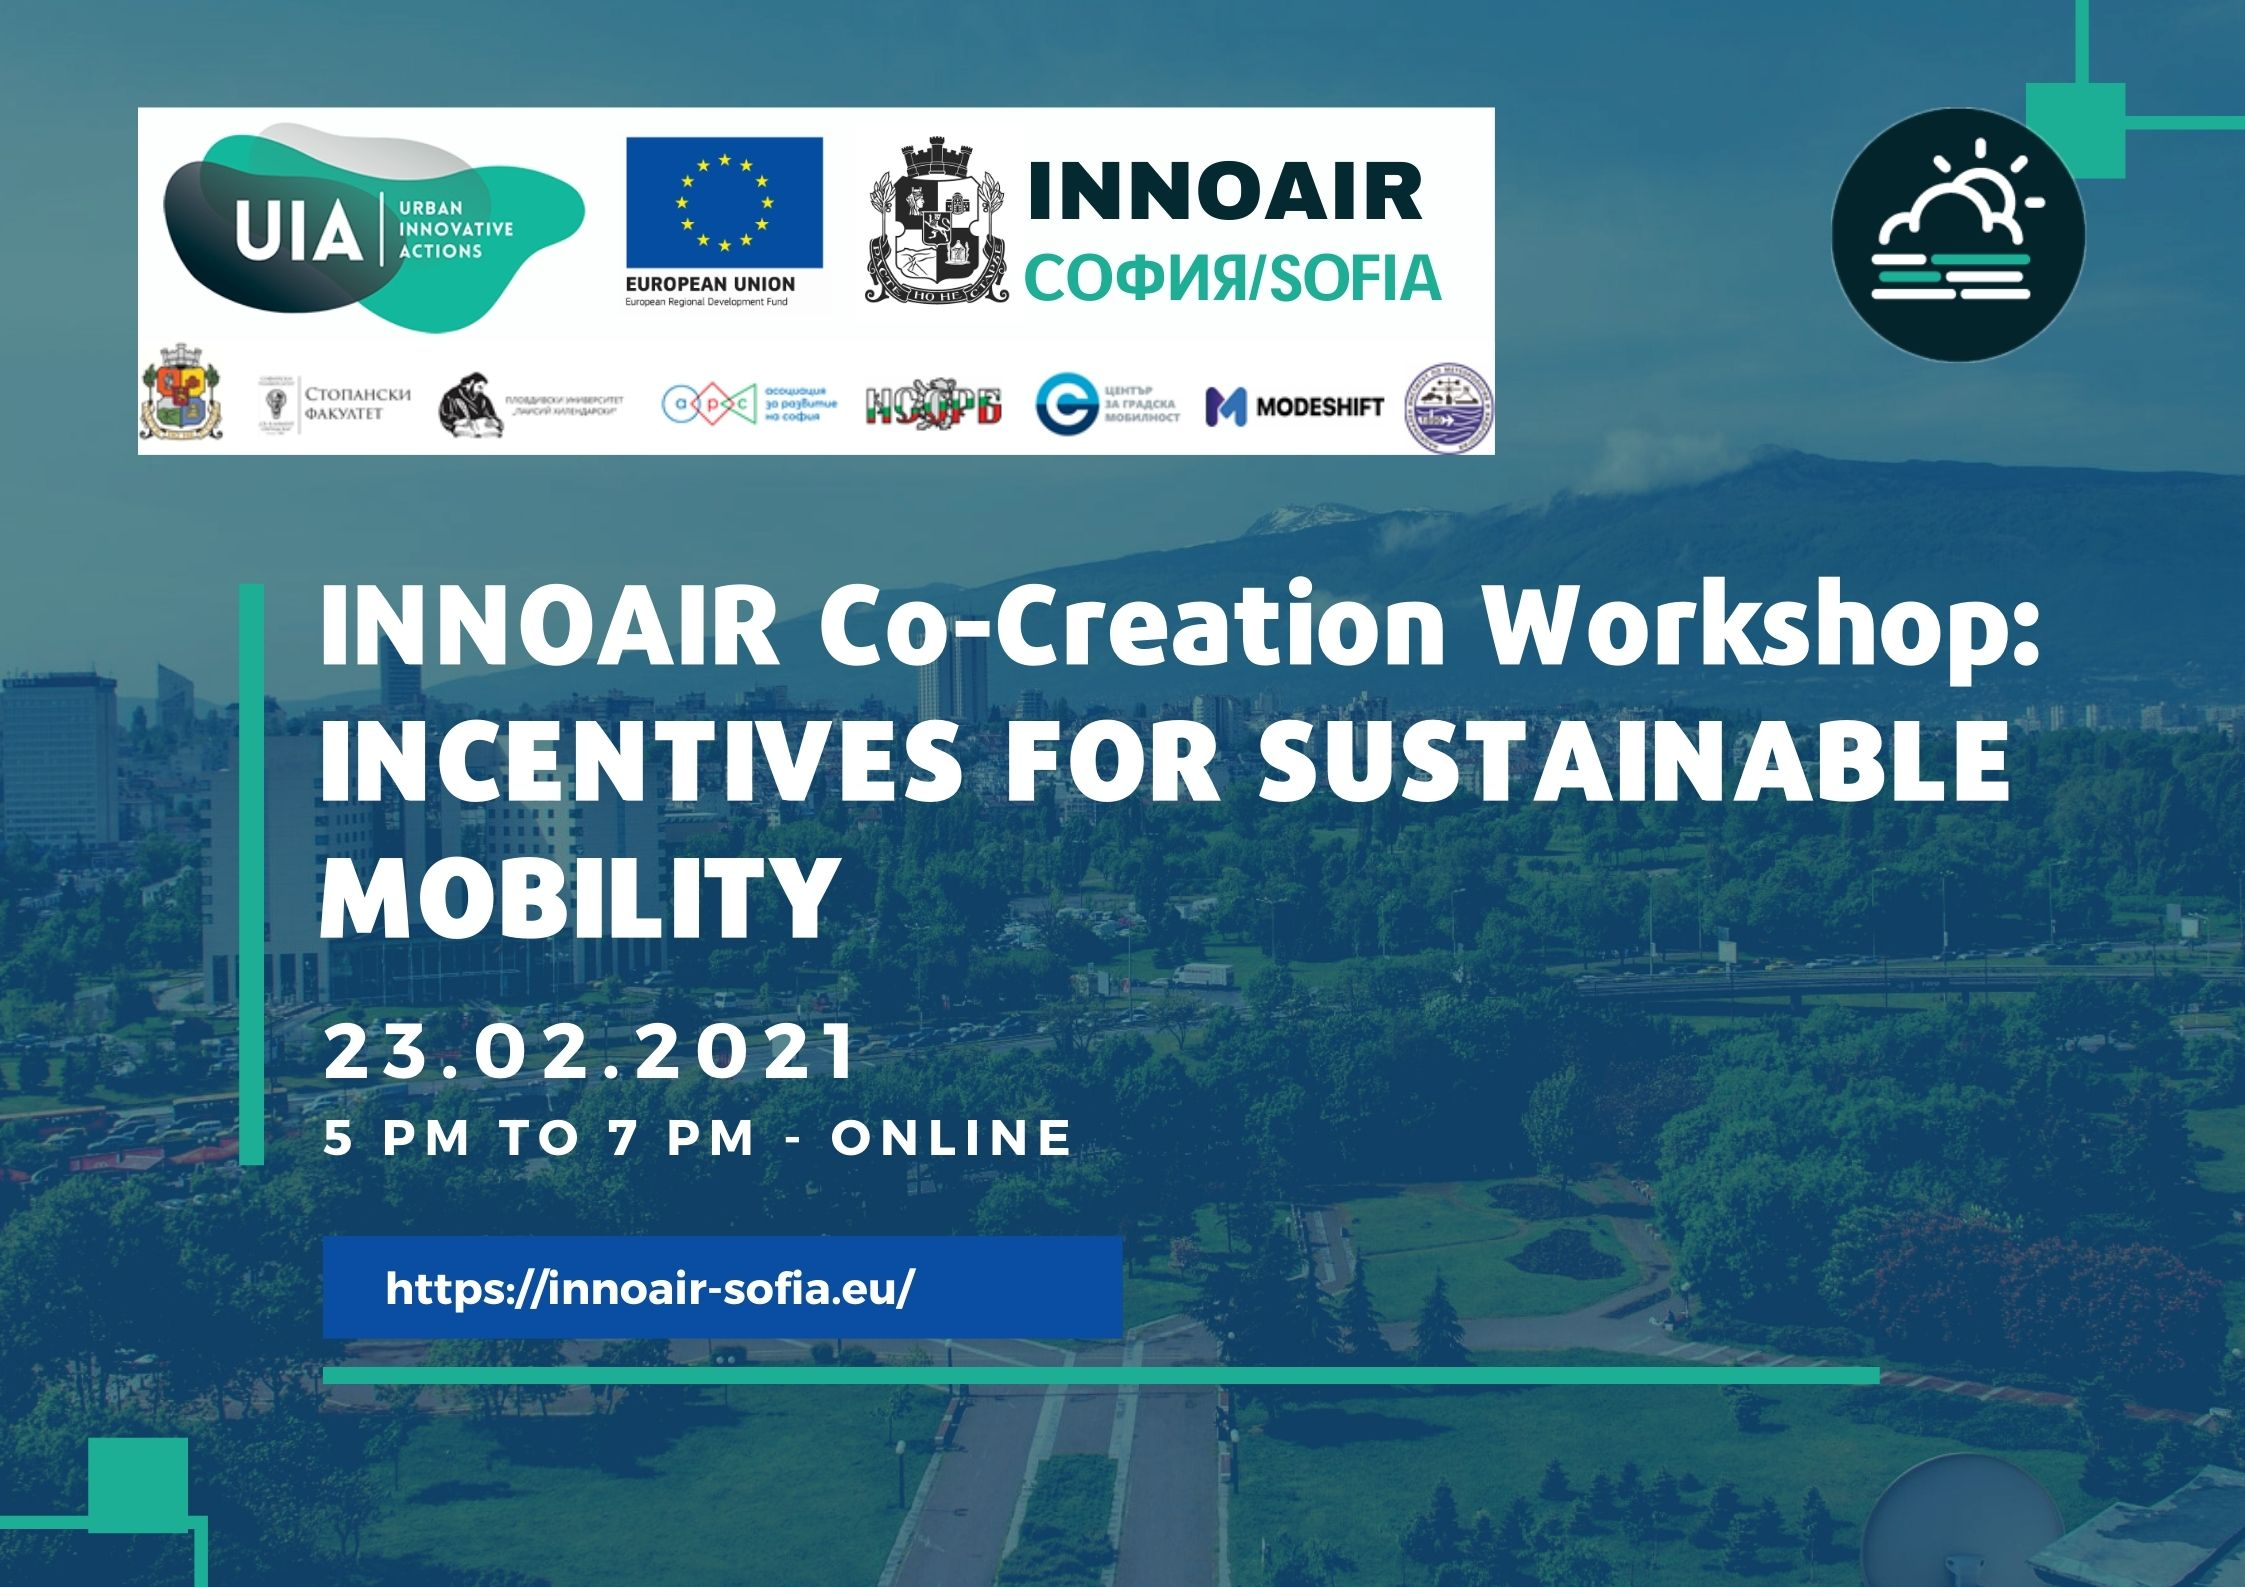 INNOAIR Co-Creation Workshop: Incentives for sustainable mobility